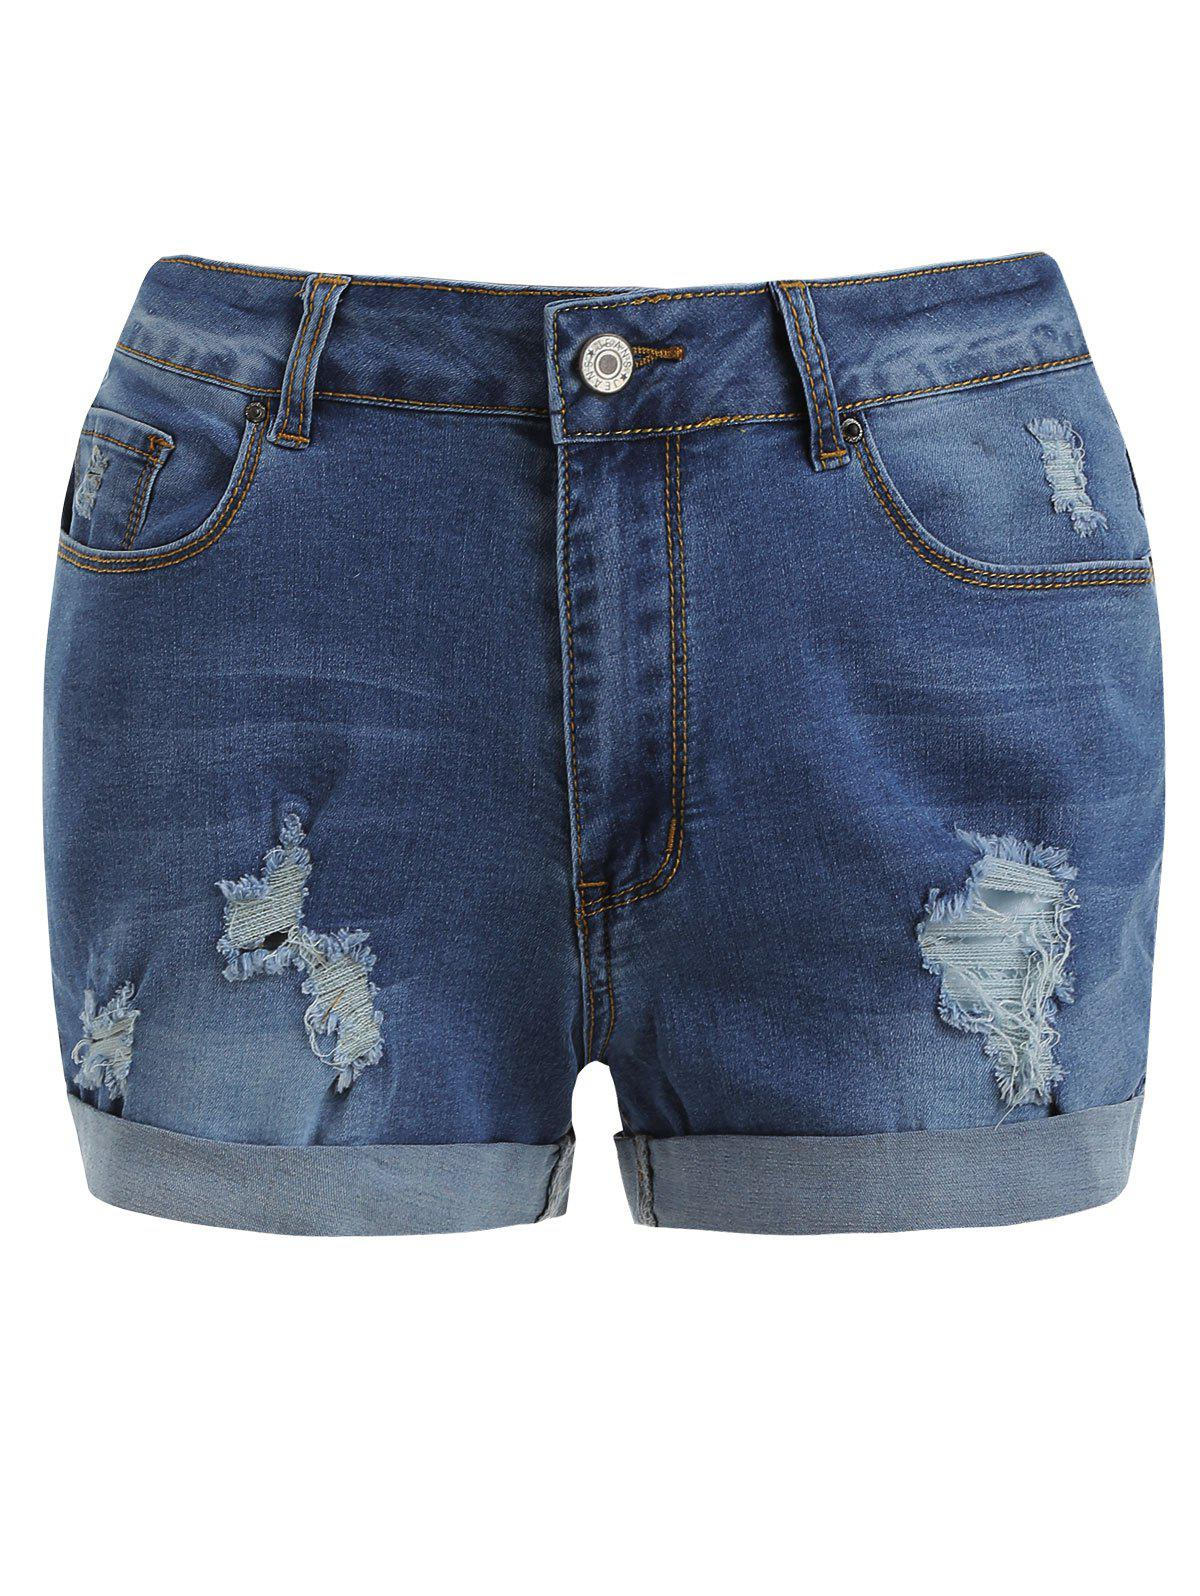 Buy Distressed Cuff Denim Shorts